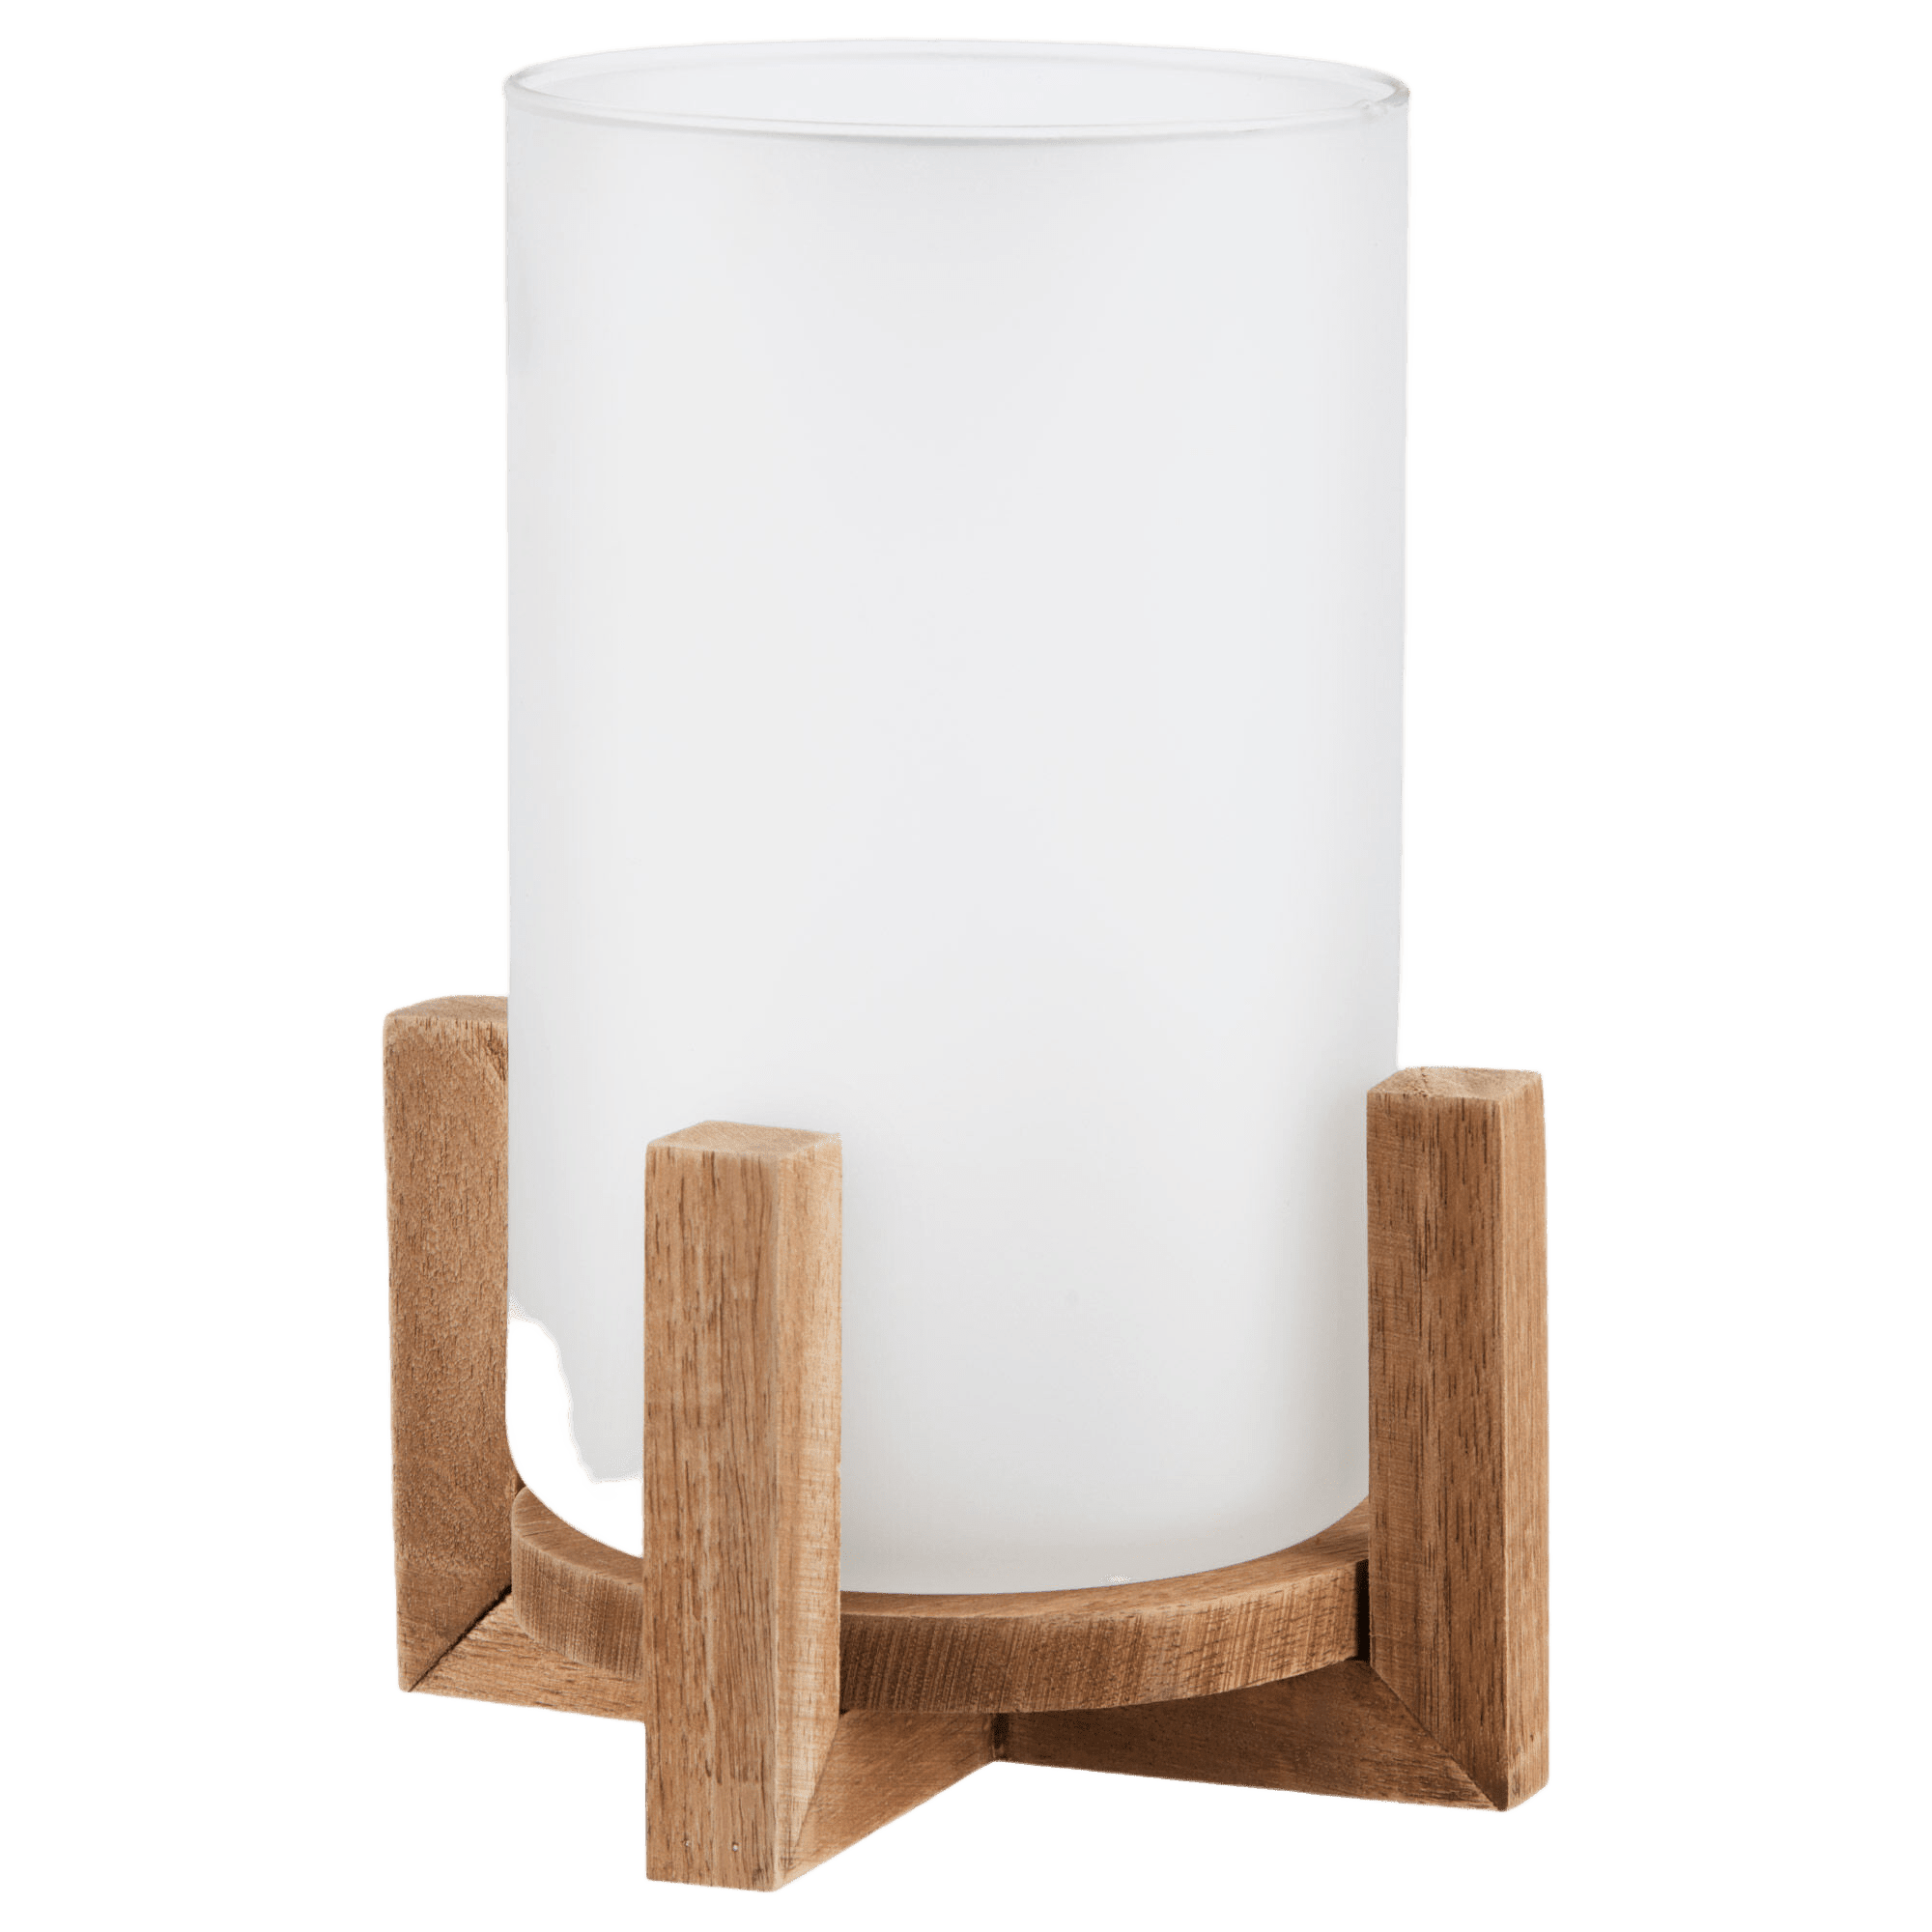 Frosted Glass Candle Holder with Wooden Base